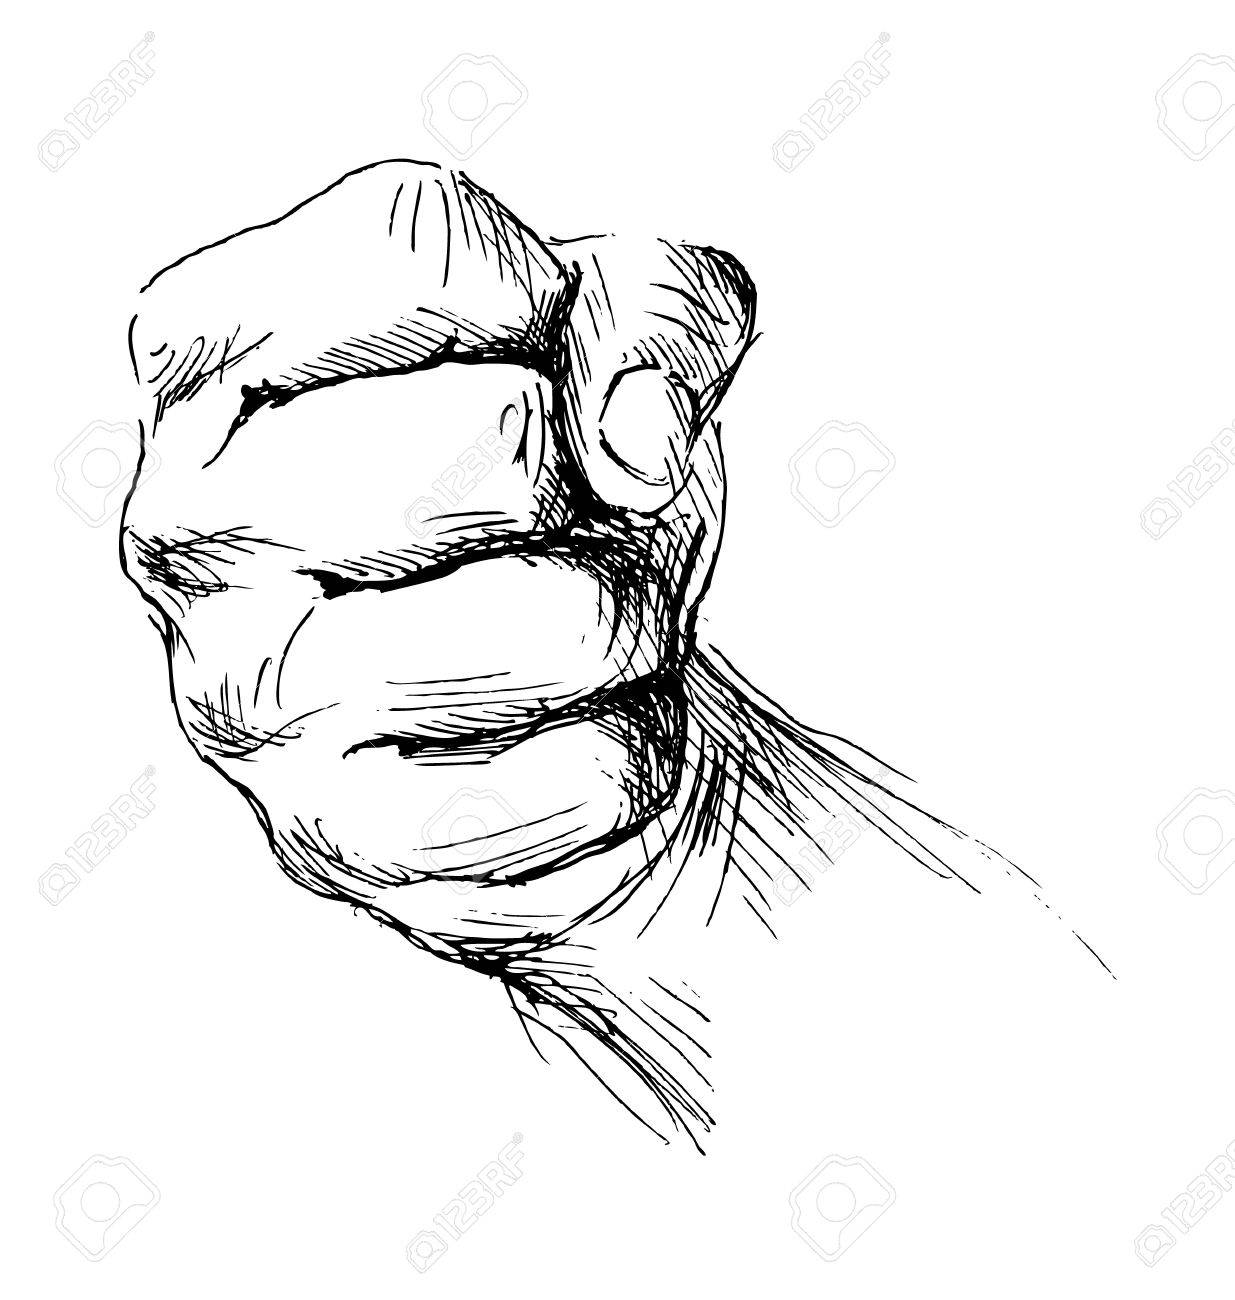 Clenched Fist Drawing At Getdrawings